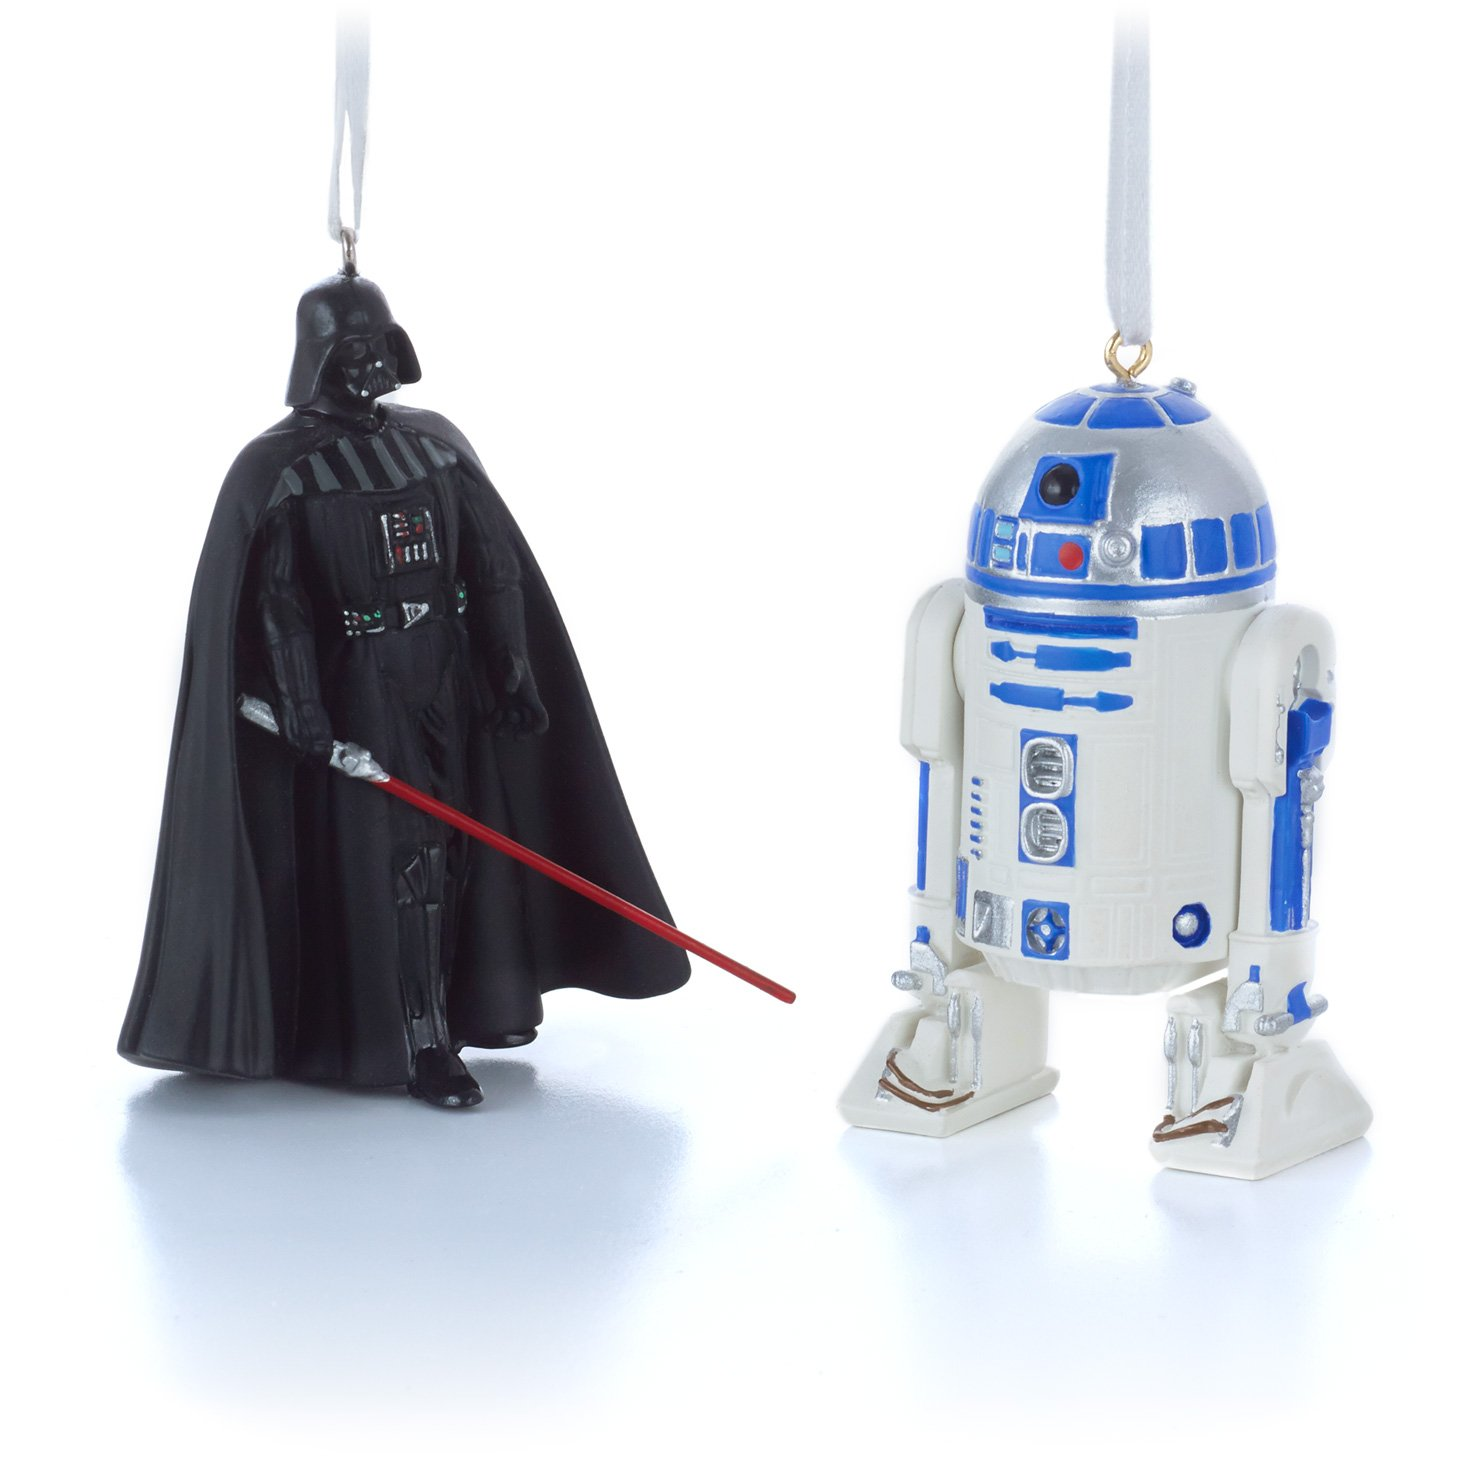 Hallmark Star Wars Darth Vader and R2D2 Christmas Ornaments, Set of 2